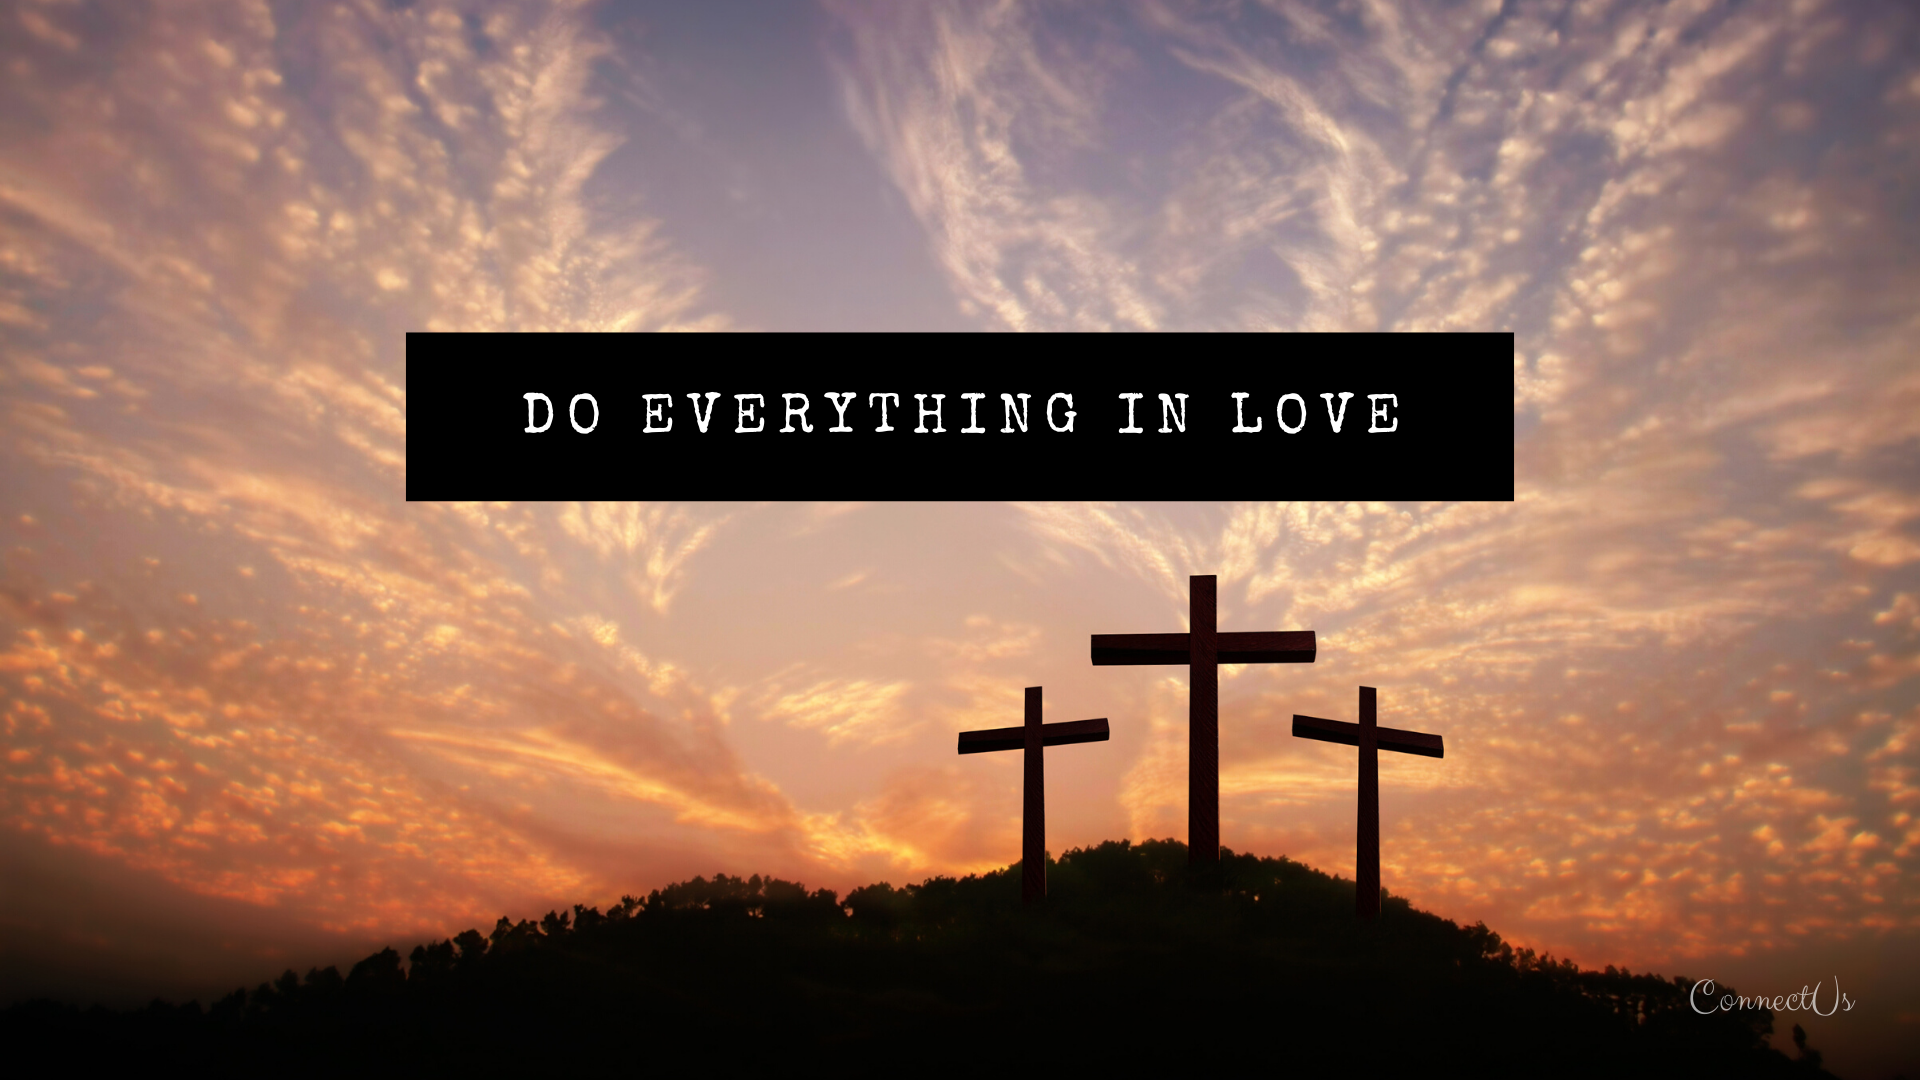 50 Free Christian Desktop Wallpaper Downloads With Bible Verses Connectus